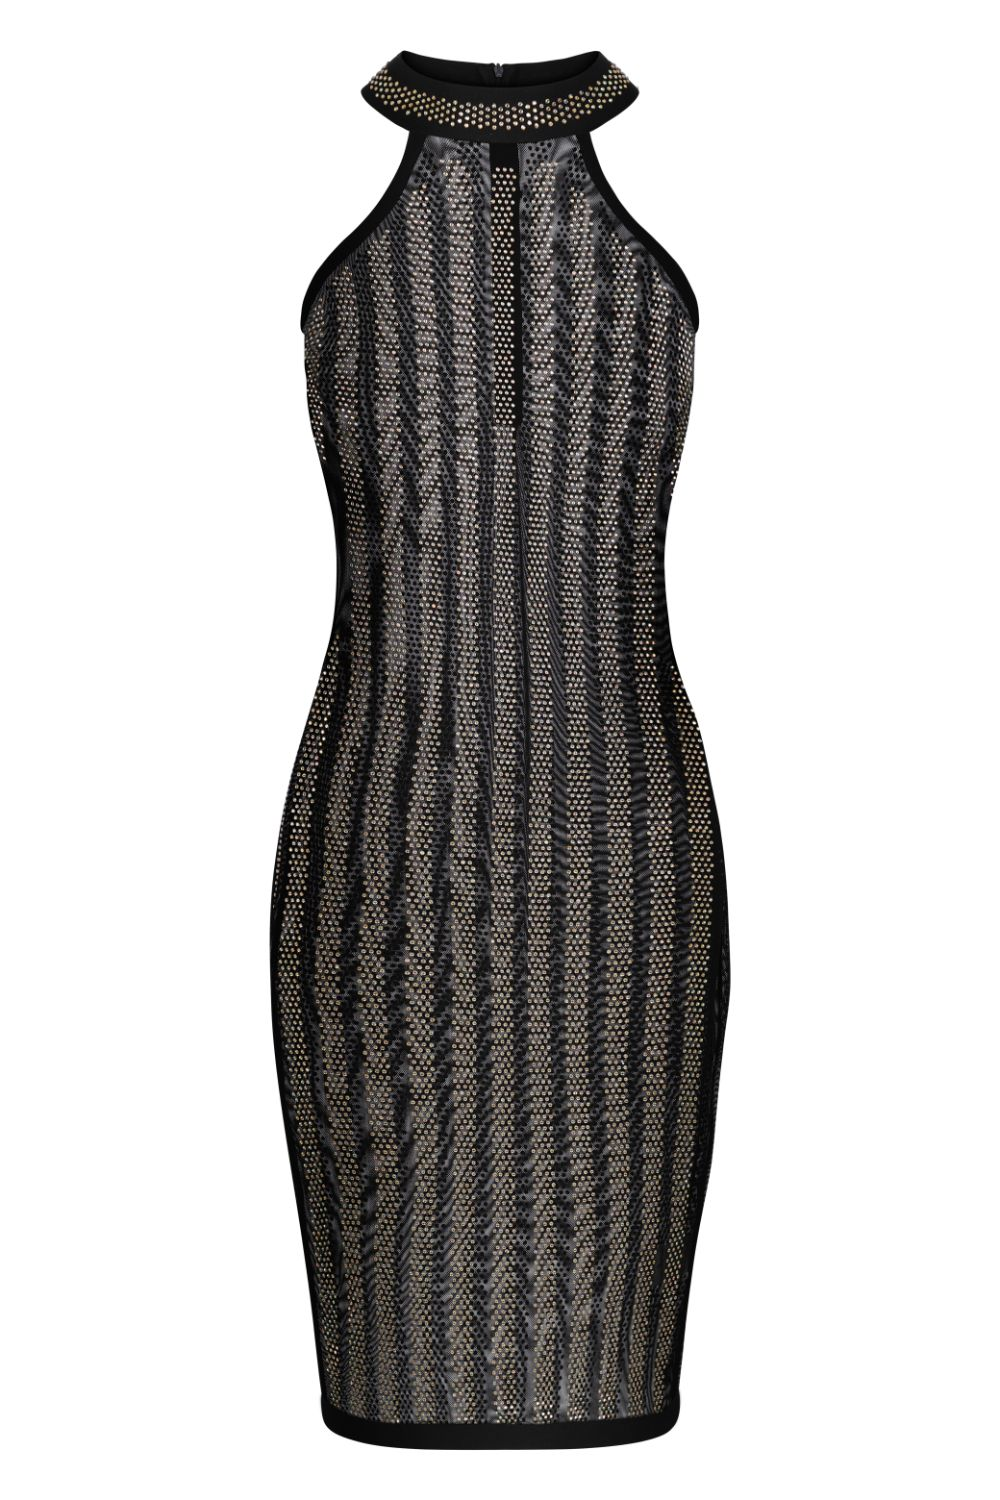 Xtra Black Crystal Iridescent Rhinestone Sheer Mesh Midi Bodycon Dress